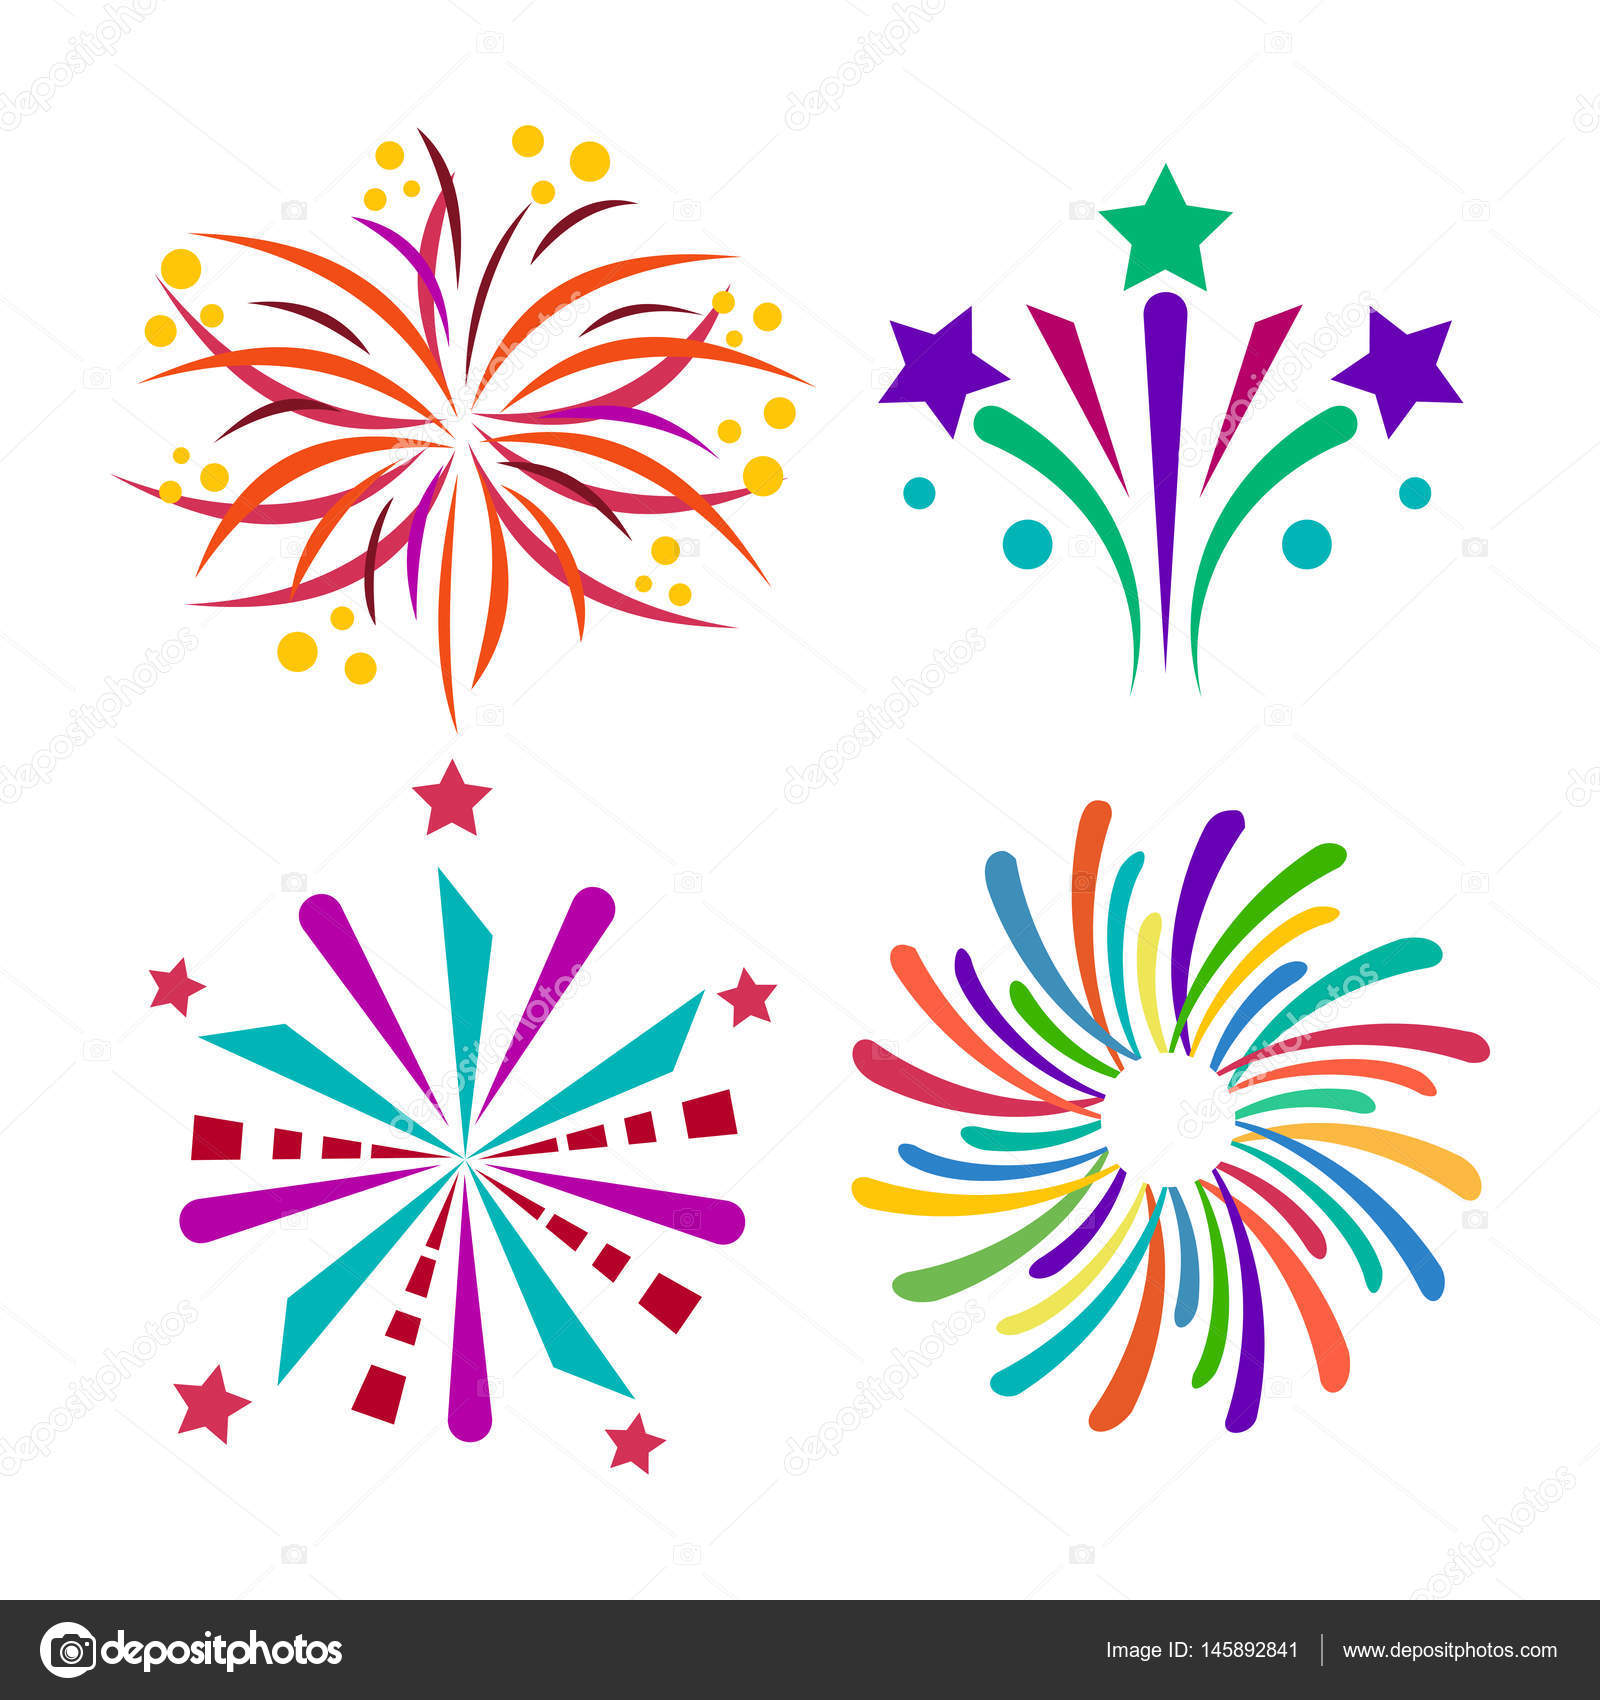 firework vector icon isolated illustration celebration holiday event night new year fire festival explosion light festive